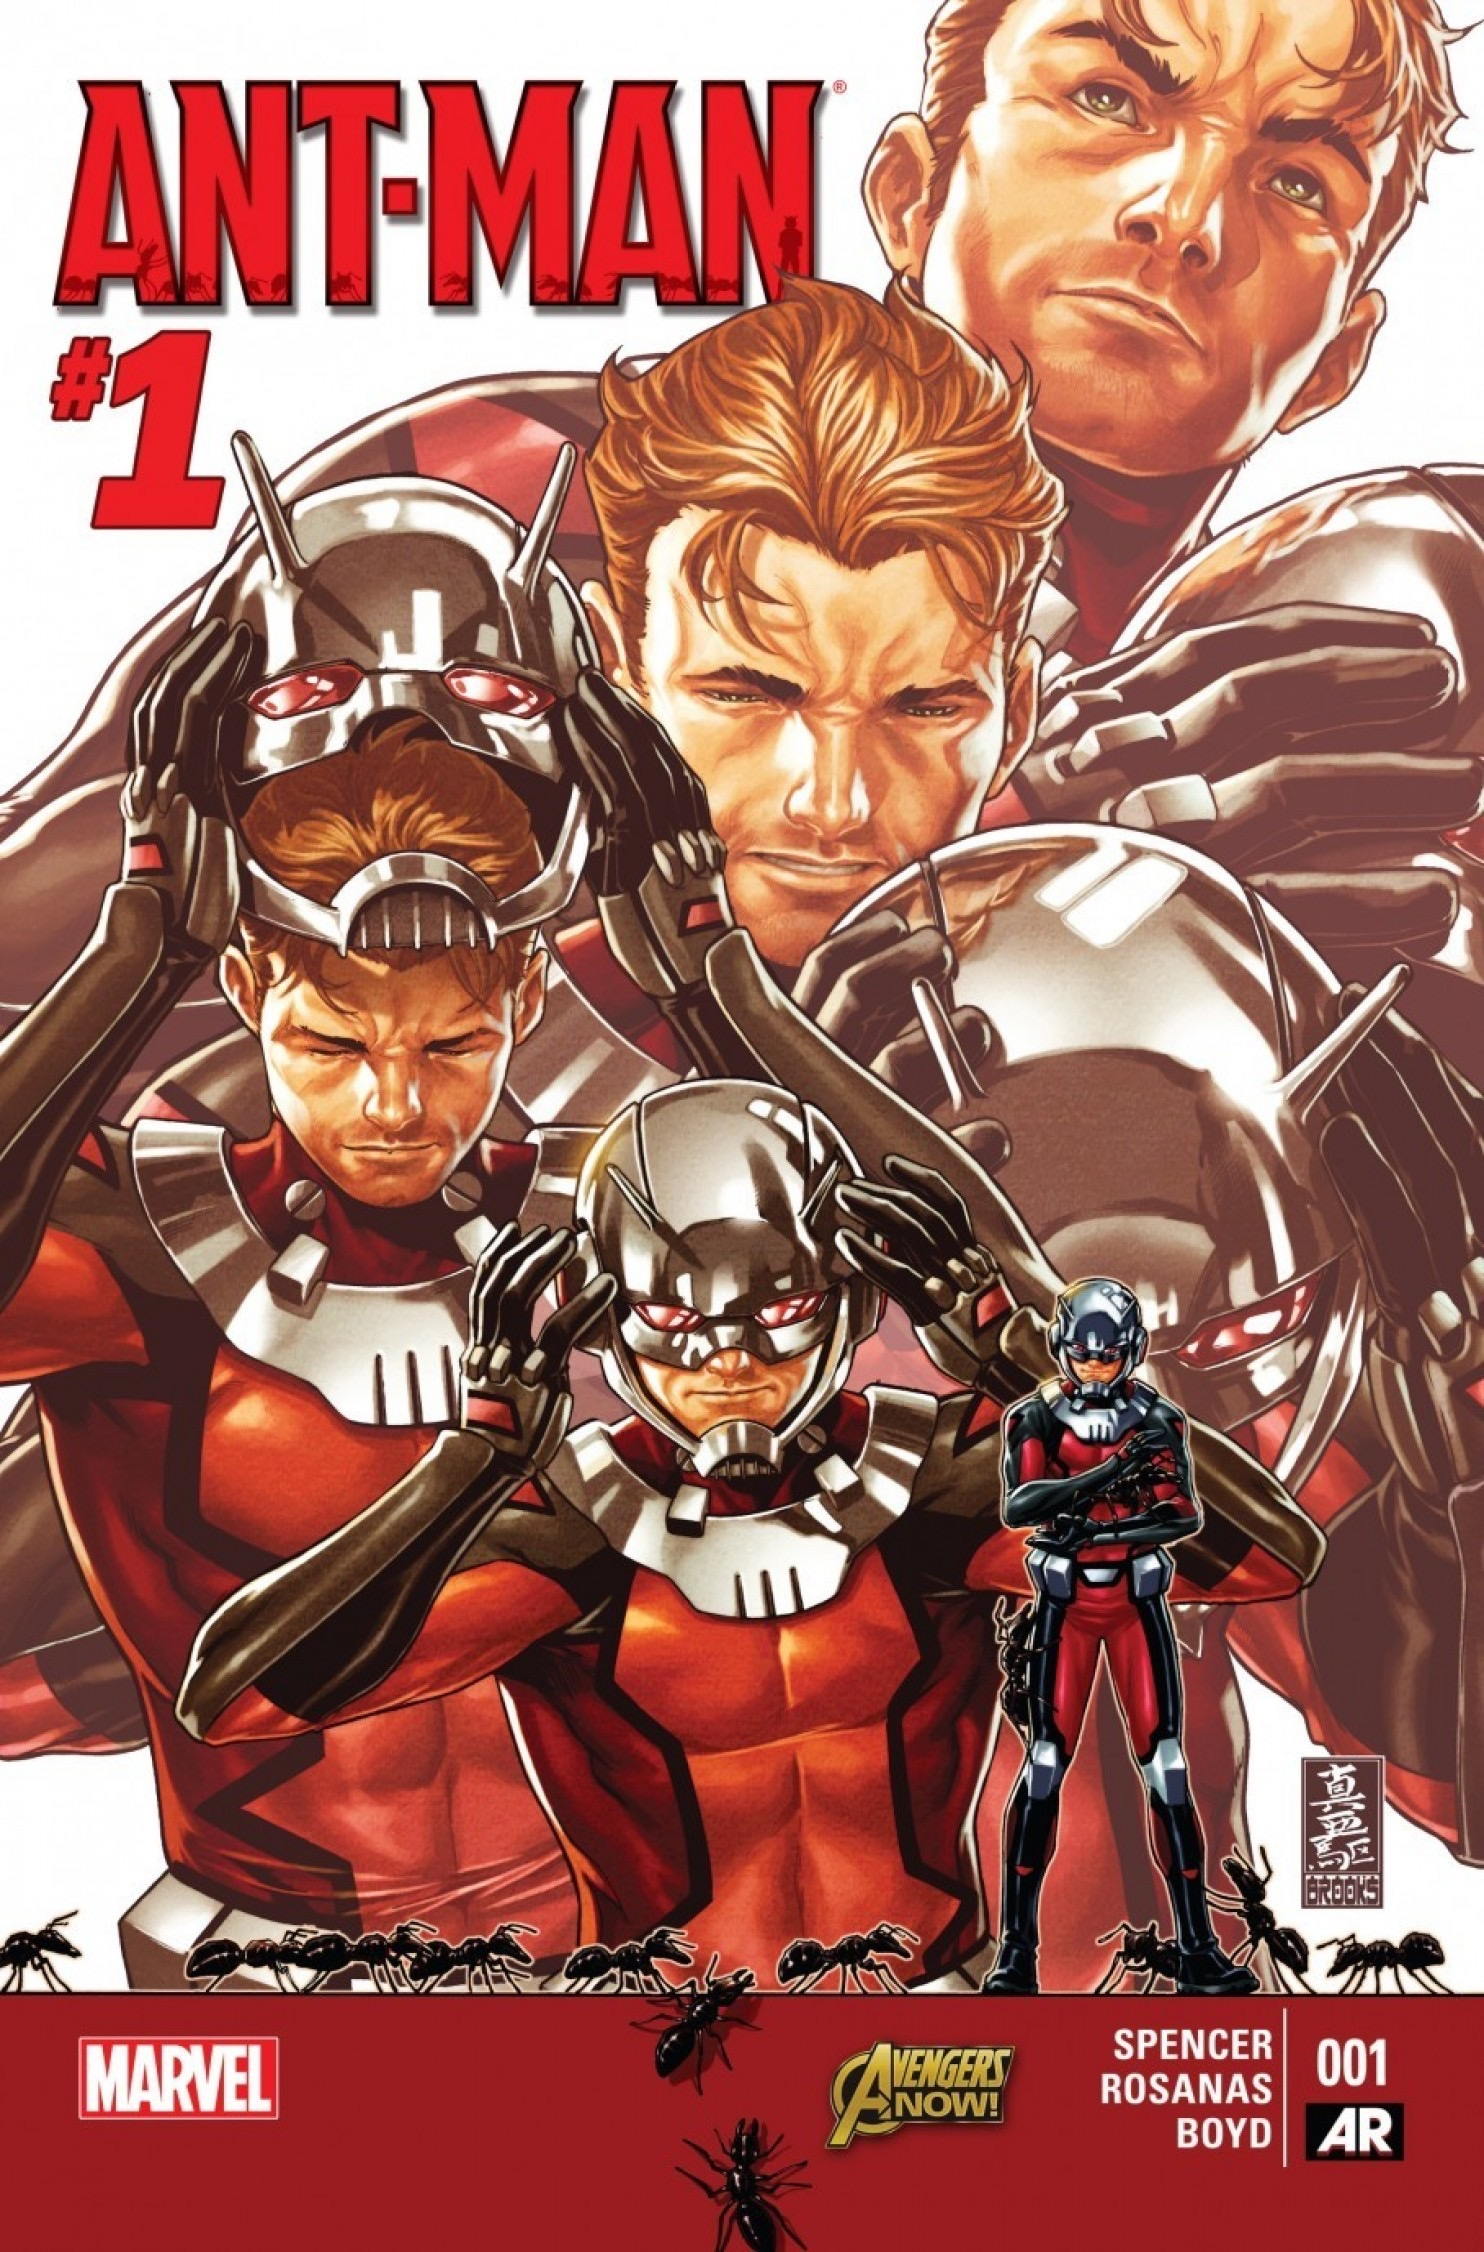 Ant-Man #1 by Nick Spencer and Ramon Rosanas